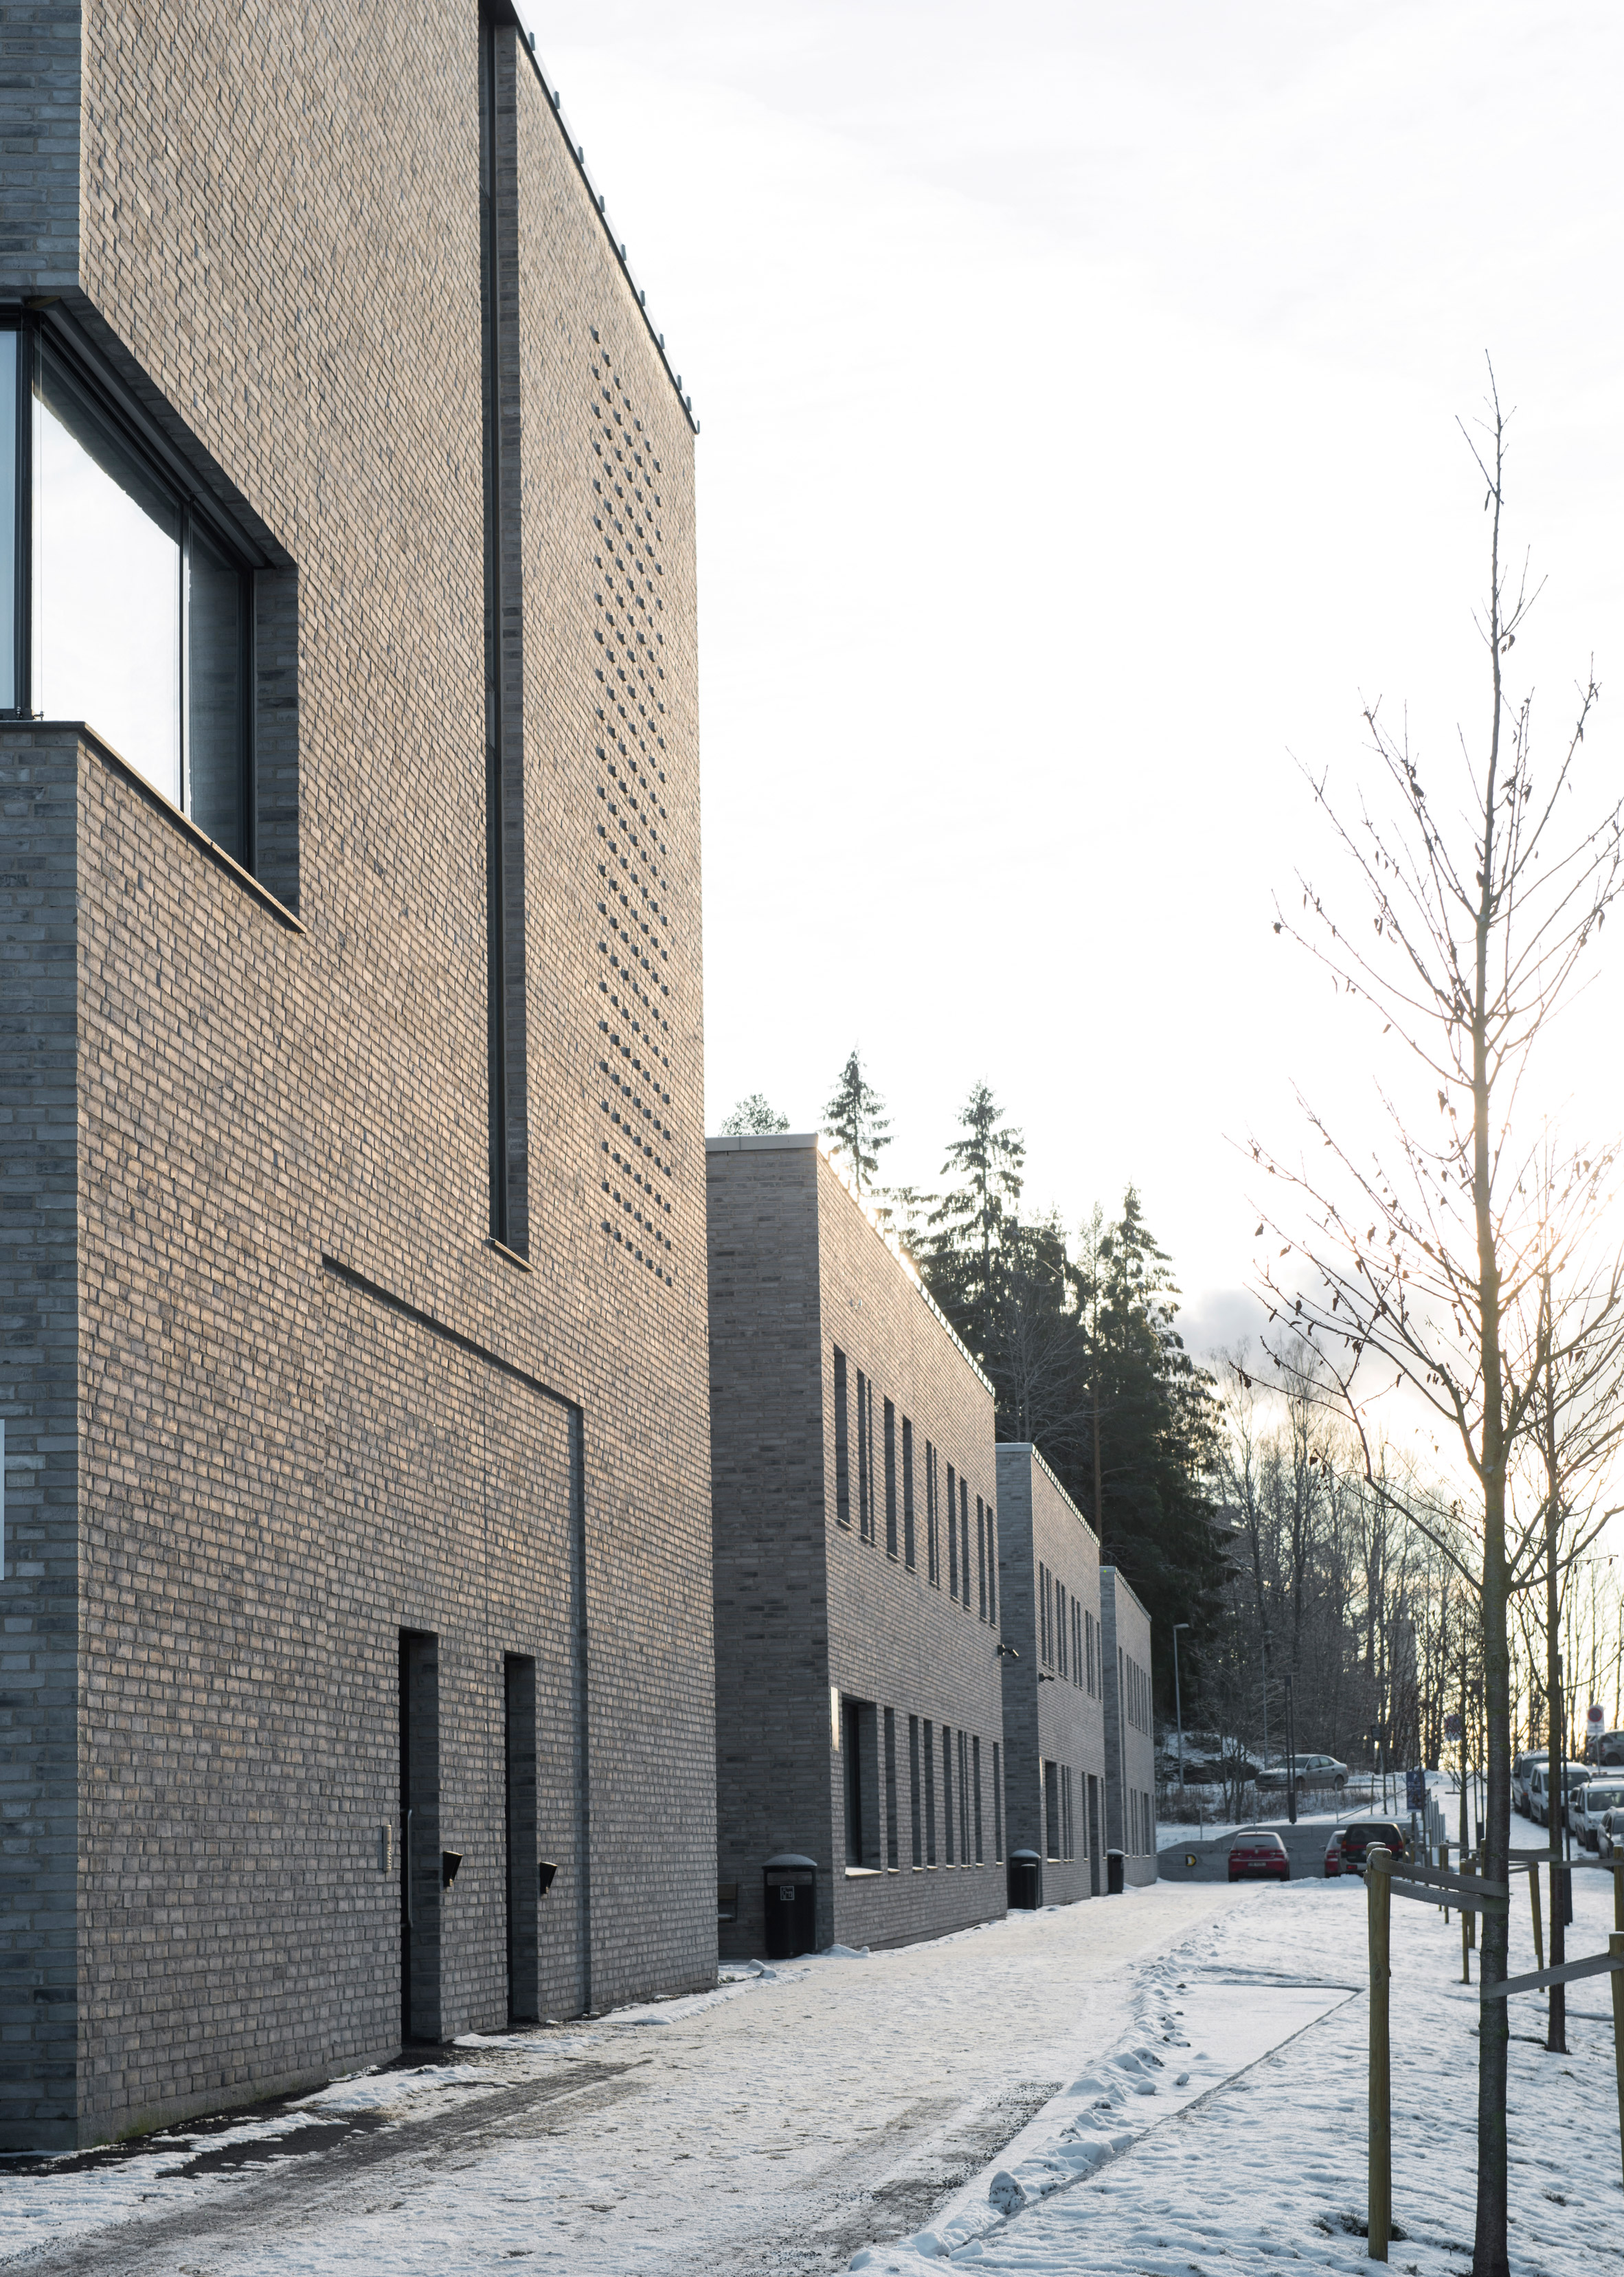 Oslo psychiatric centreby Hille Melbye features planted courtyards and decorativebrickwork